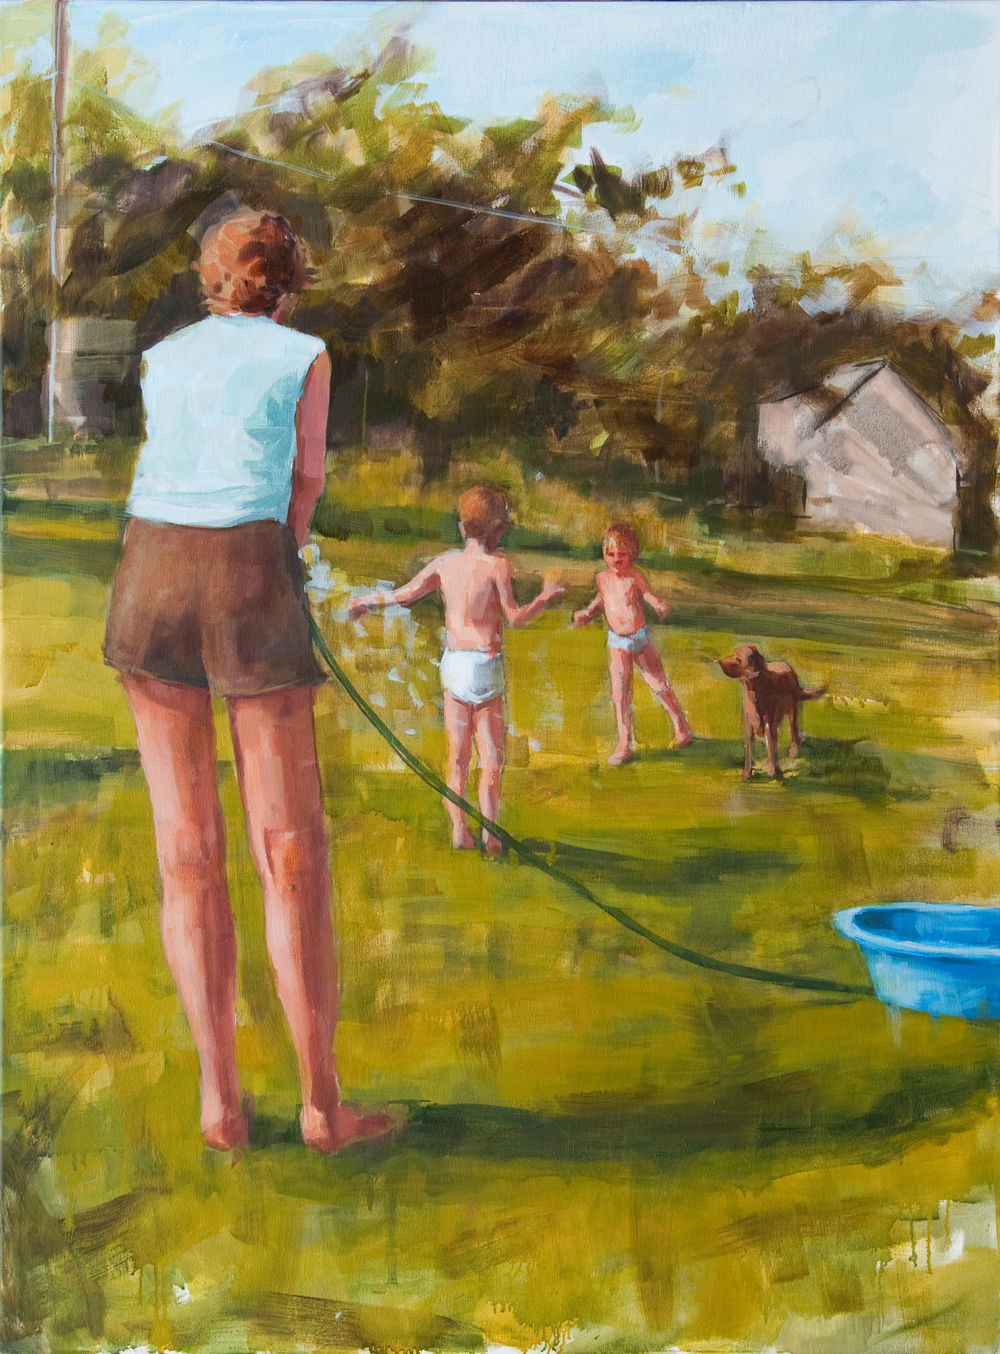 "Blue Kidde Pool, oil on canvas, 40"" x 30"", 2012, Private Collection"